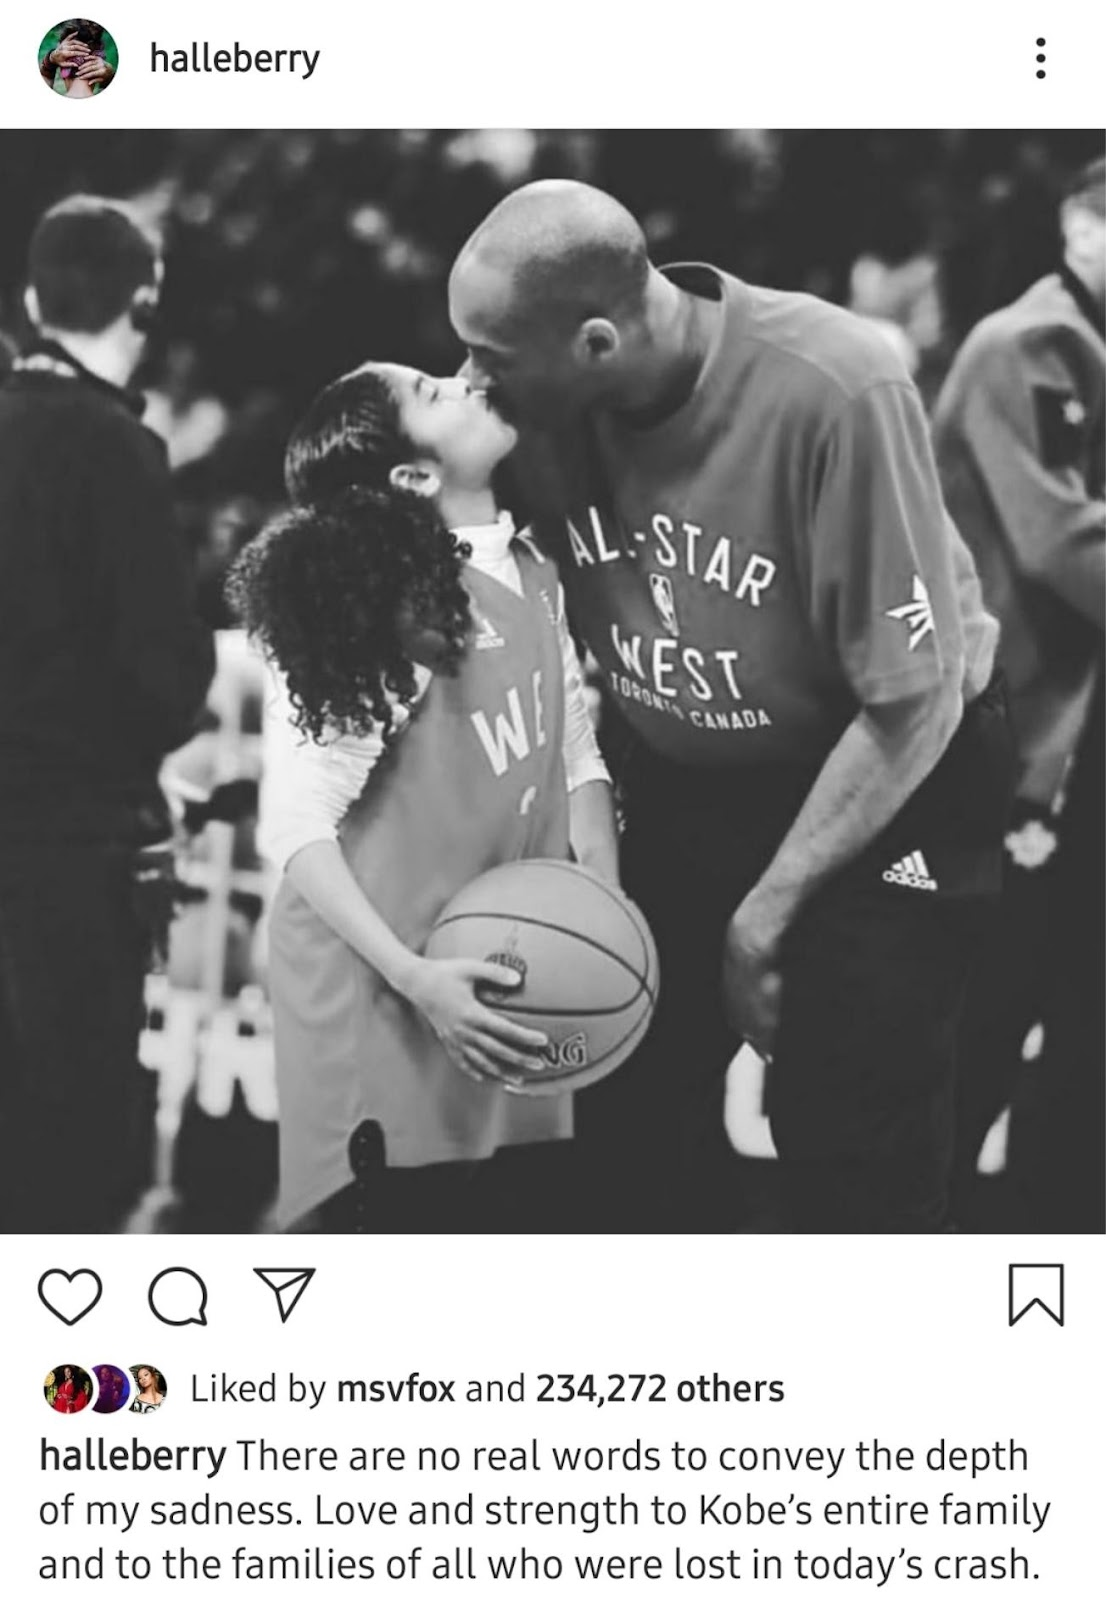 halleberry Liked by msvfox and 234,272 others halleberry There are no real words to convey the depth of my sadness. Love and strength to Kobe's entire family and to the families of all who were lost in today's crash.